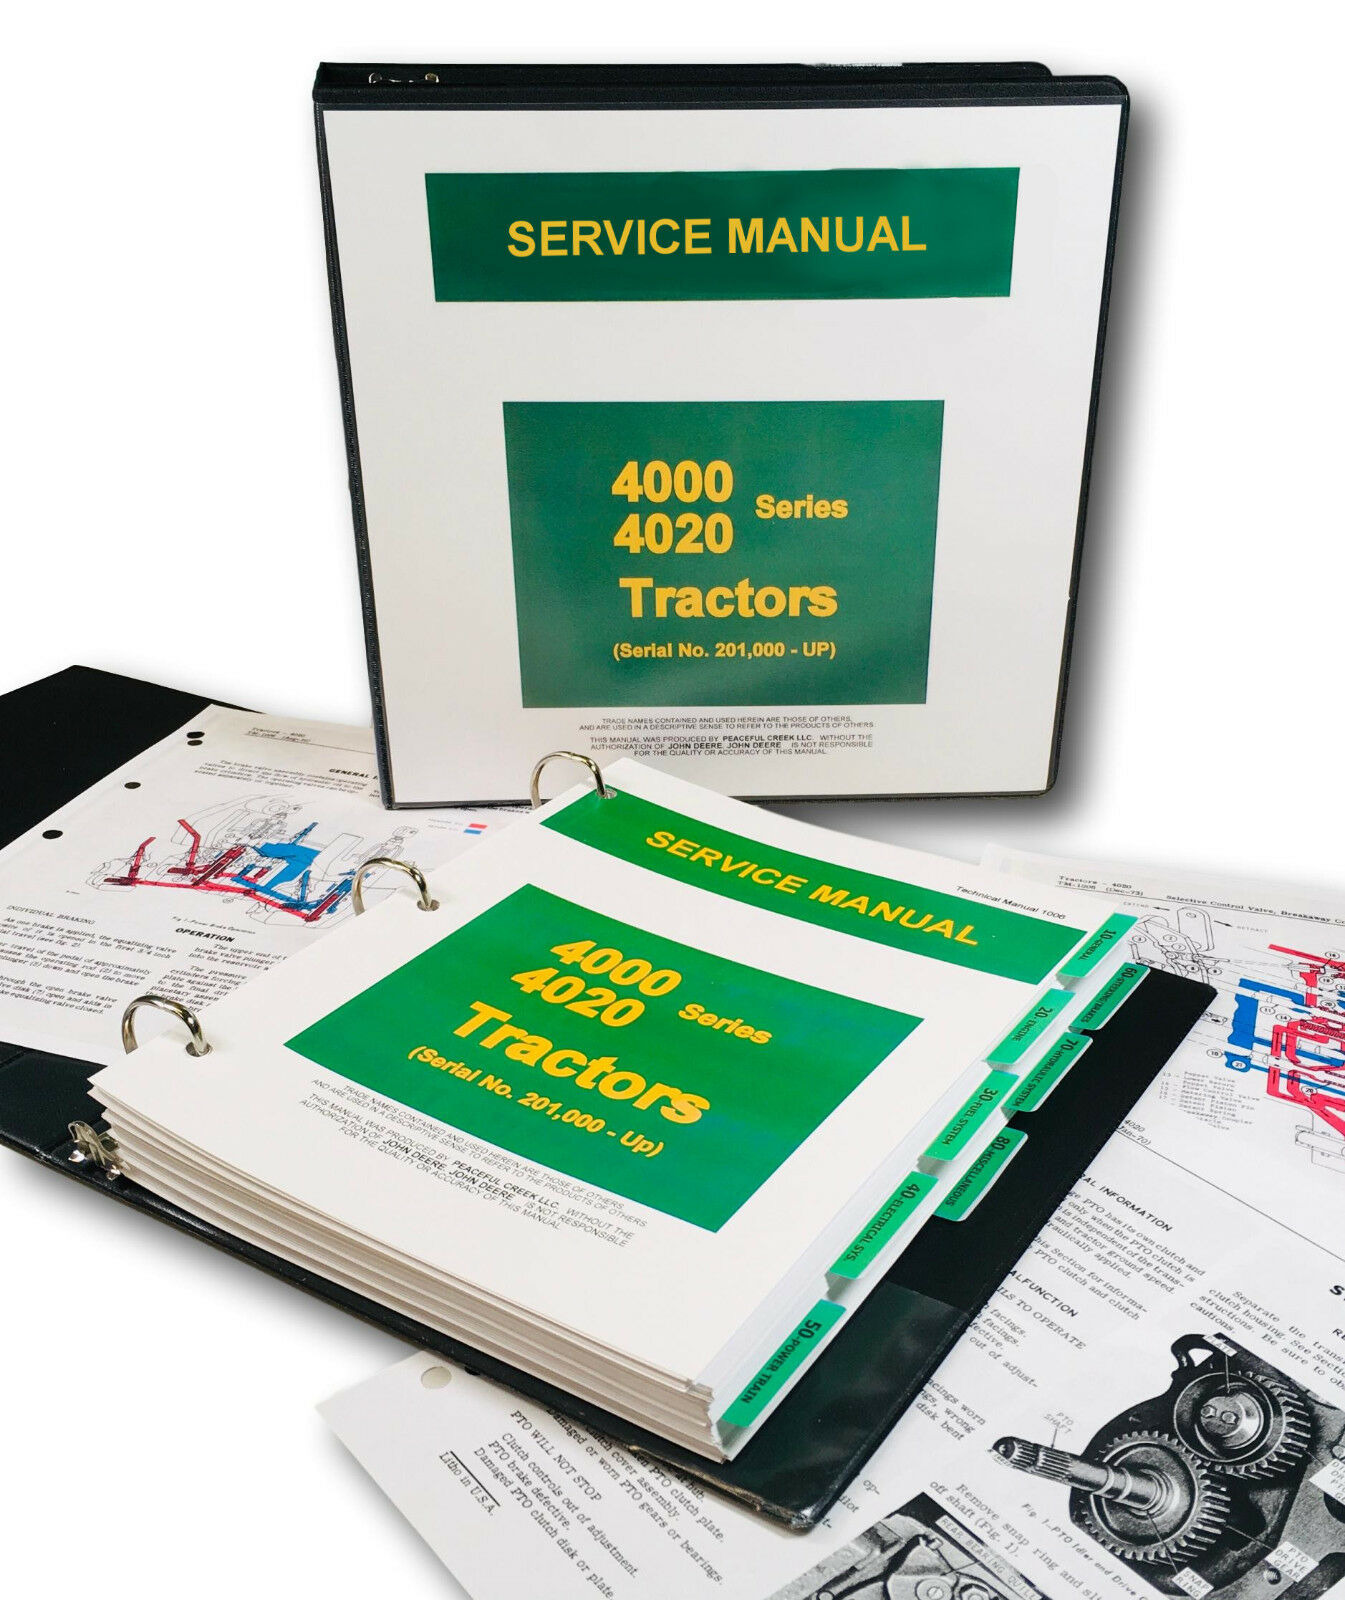 Service Manual For John Deere 4020 4000 Tractor Technical Shop Binder  Tm-1006 1 of 12FREE Shipping ...